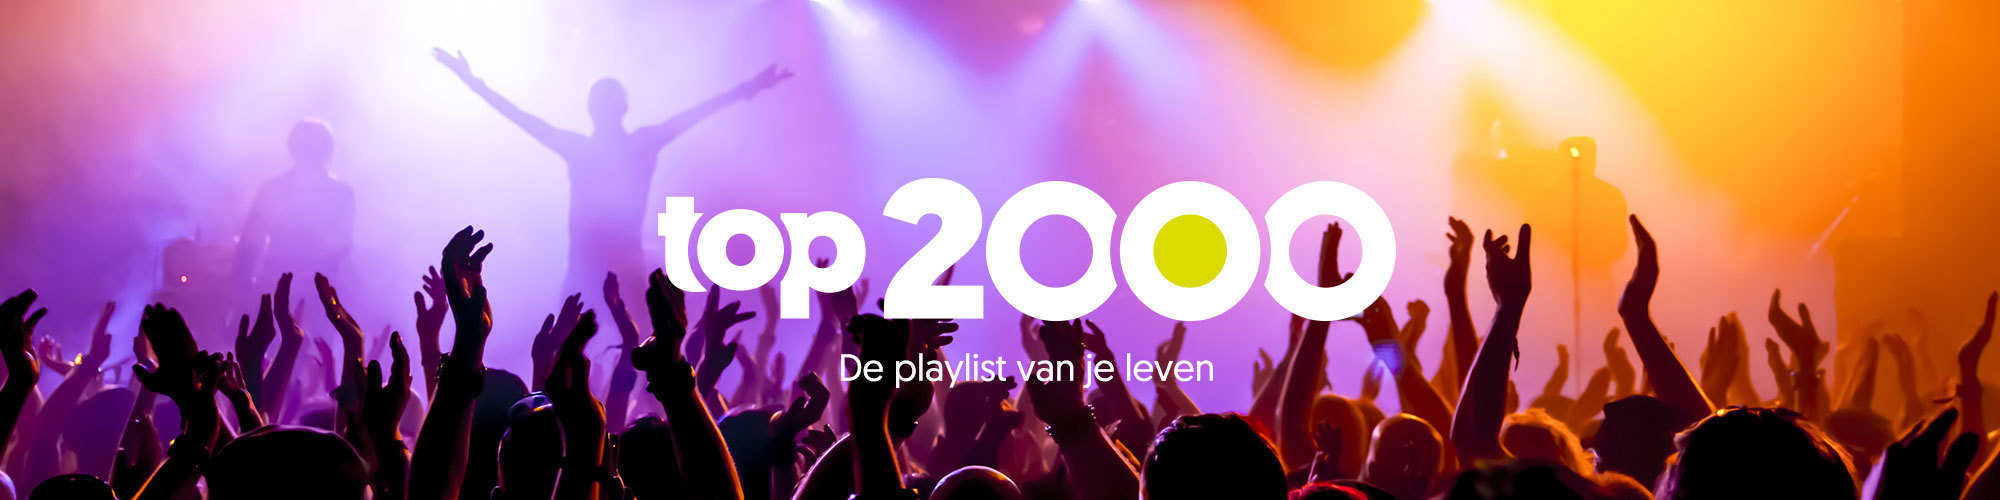 Joe carrousel top2000 finaal playlistvanjeleven 2